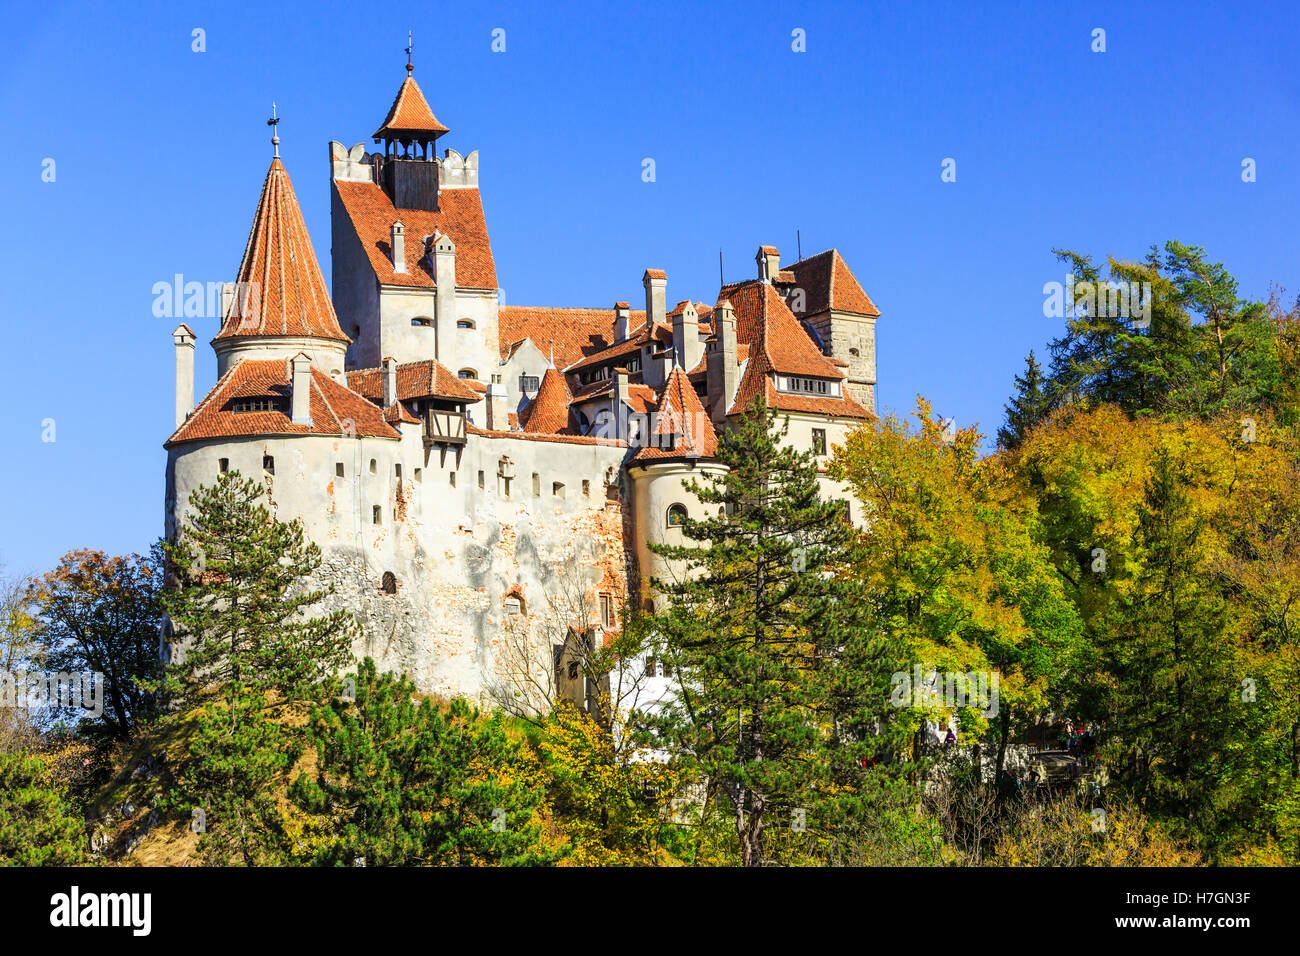 The medieval Castle of Bran, known for the myth of Dracula. Transylvania, Romania - Stock Image